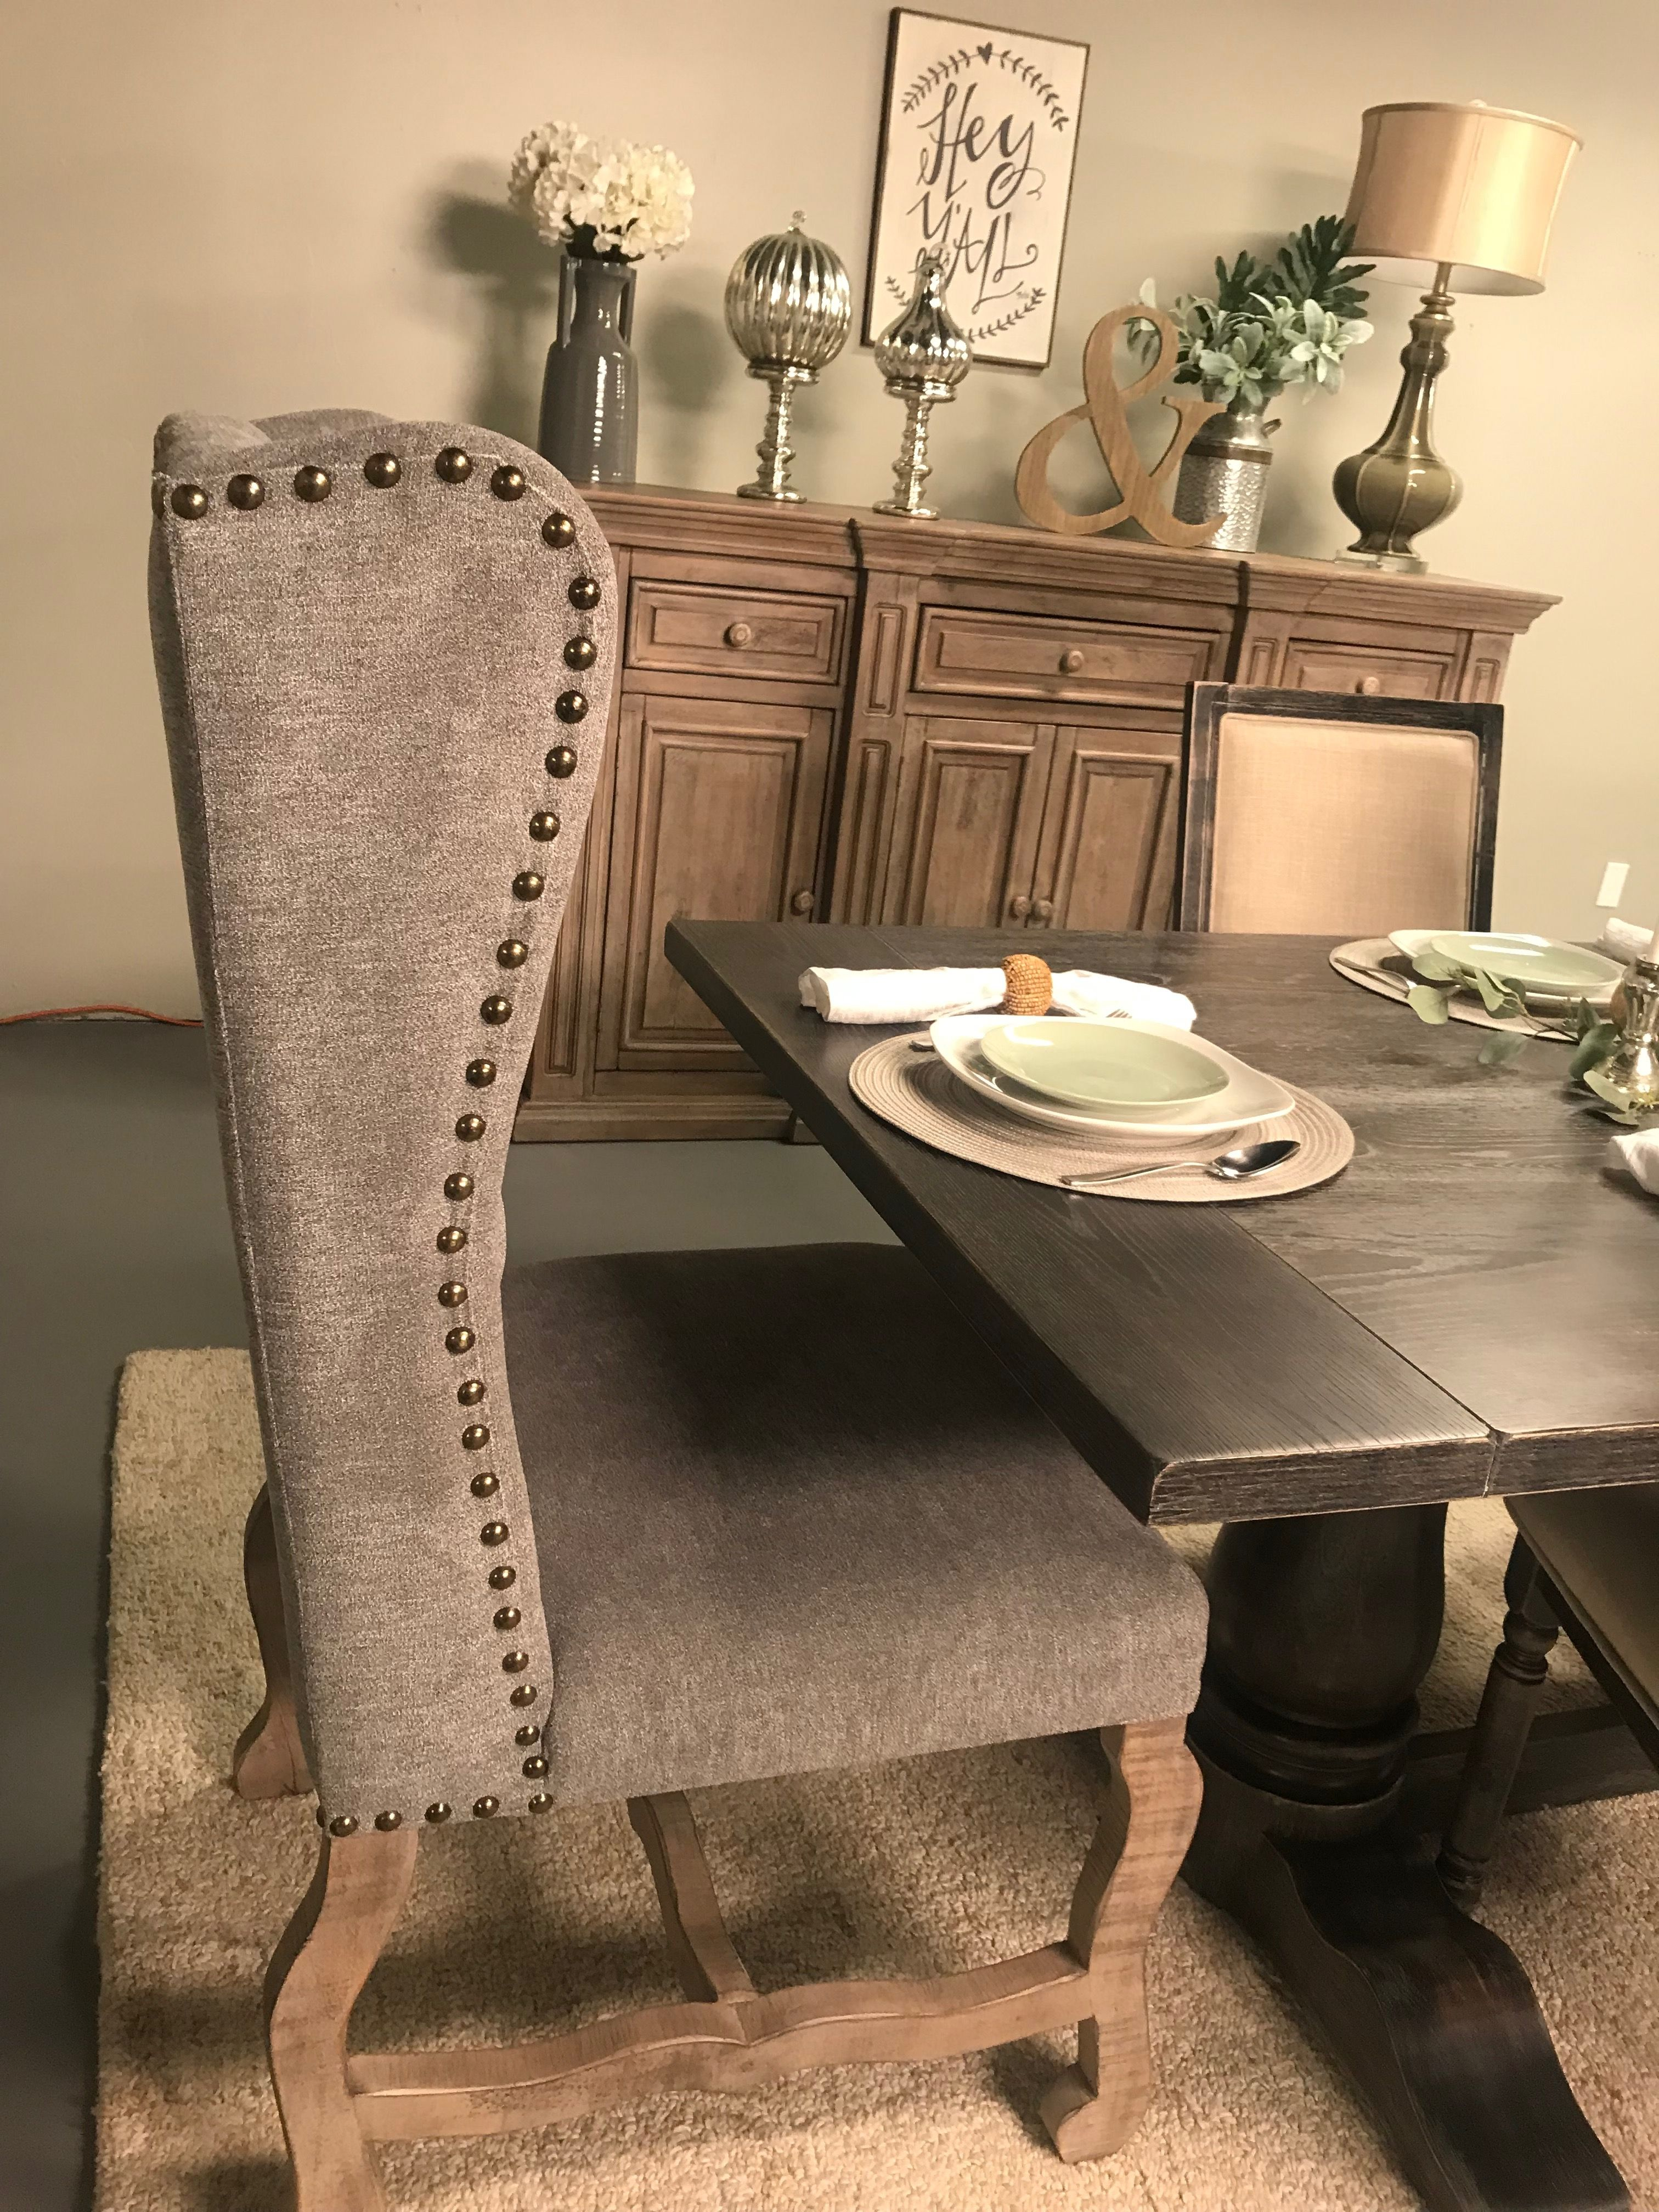 Venta Captains Chair Dining Room En, Captain Chairs For Dining Room